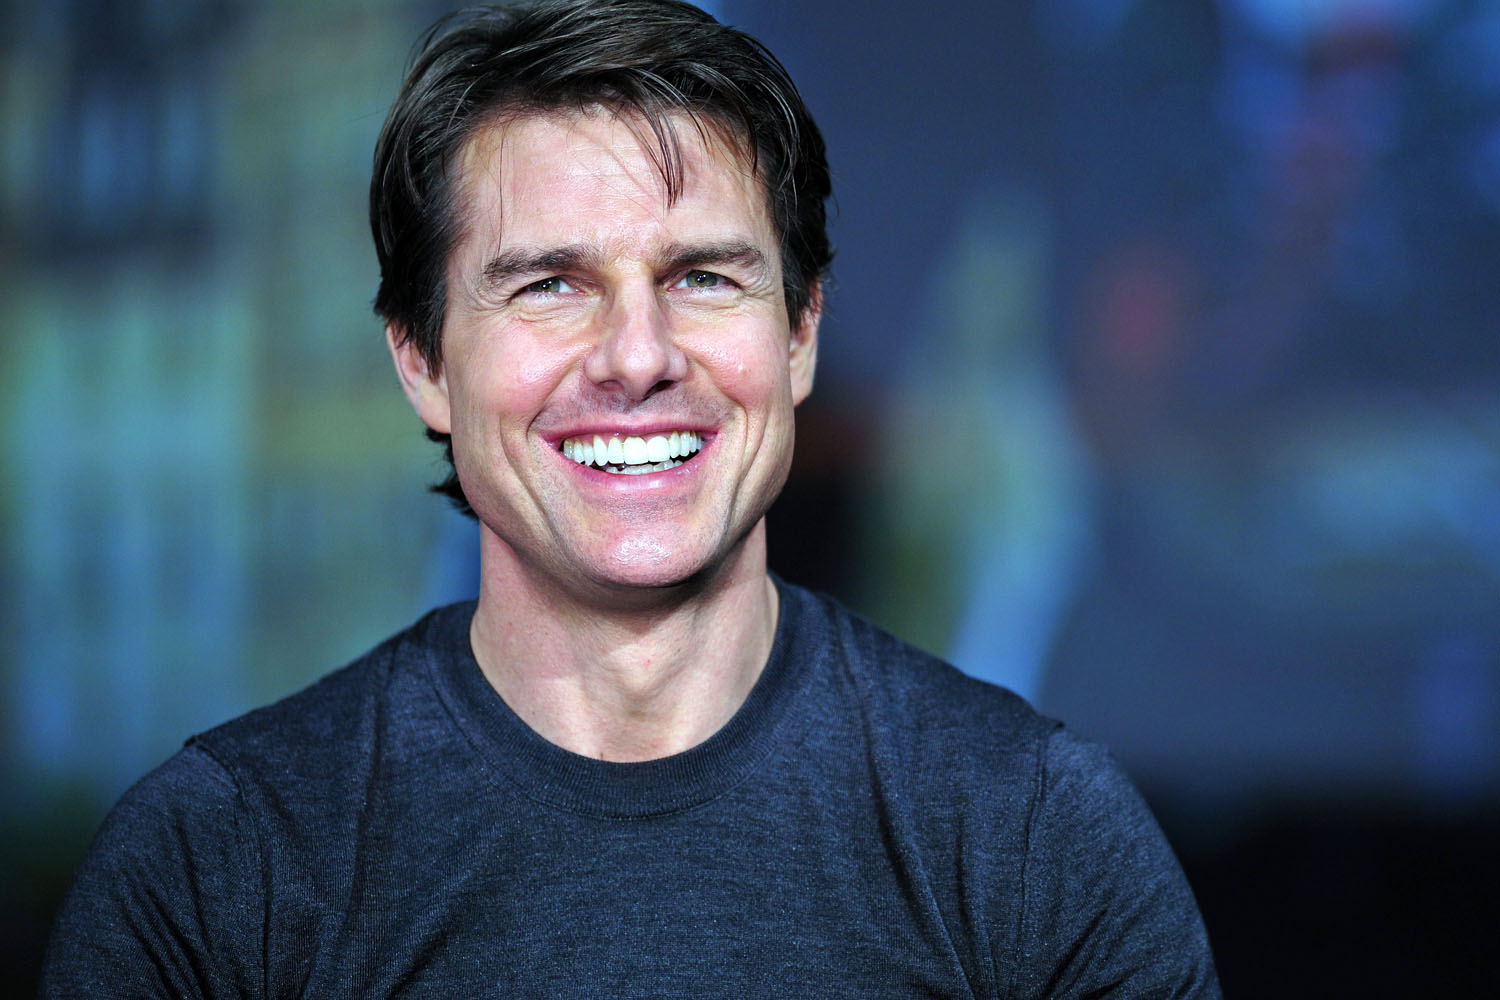 Tom Cruise Casual Men's Hairstyles 2018